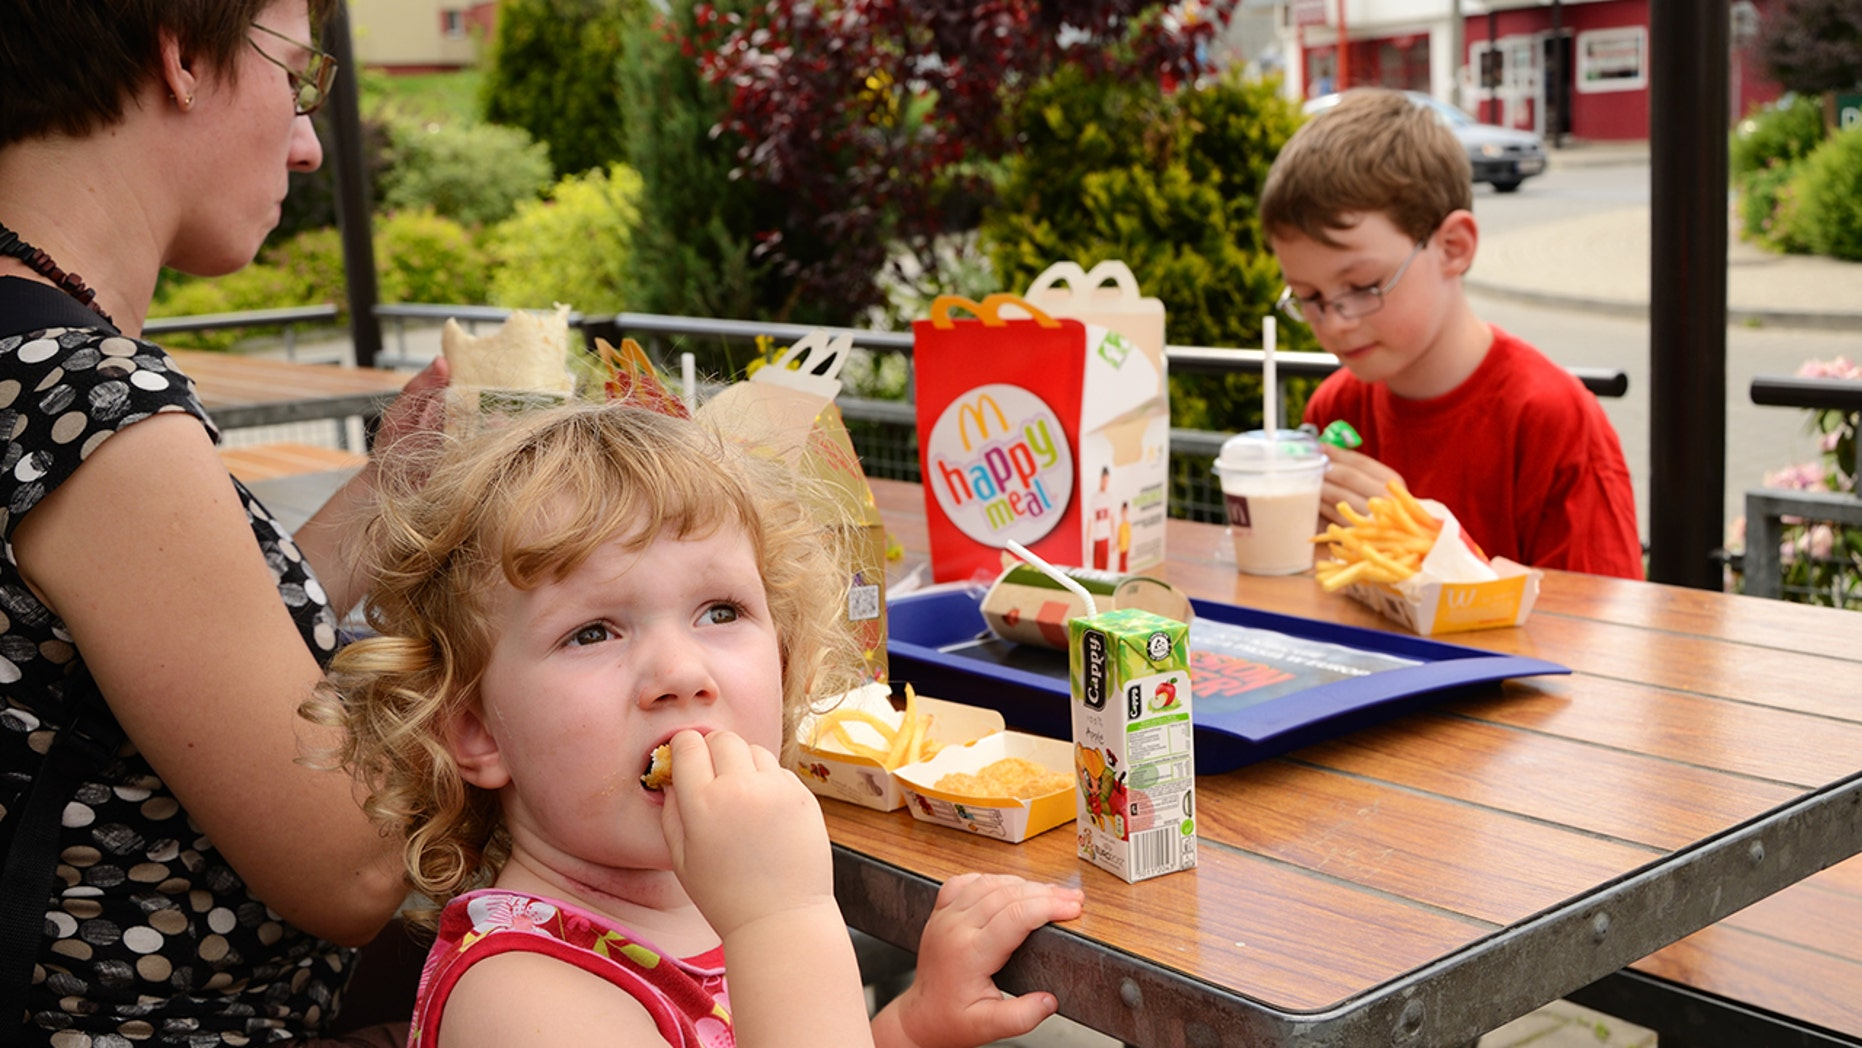 McDonald'sin Canada is being sued for marketing Happy Meals to children under 13.